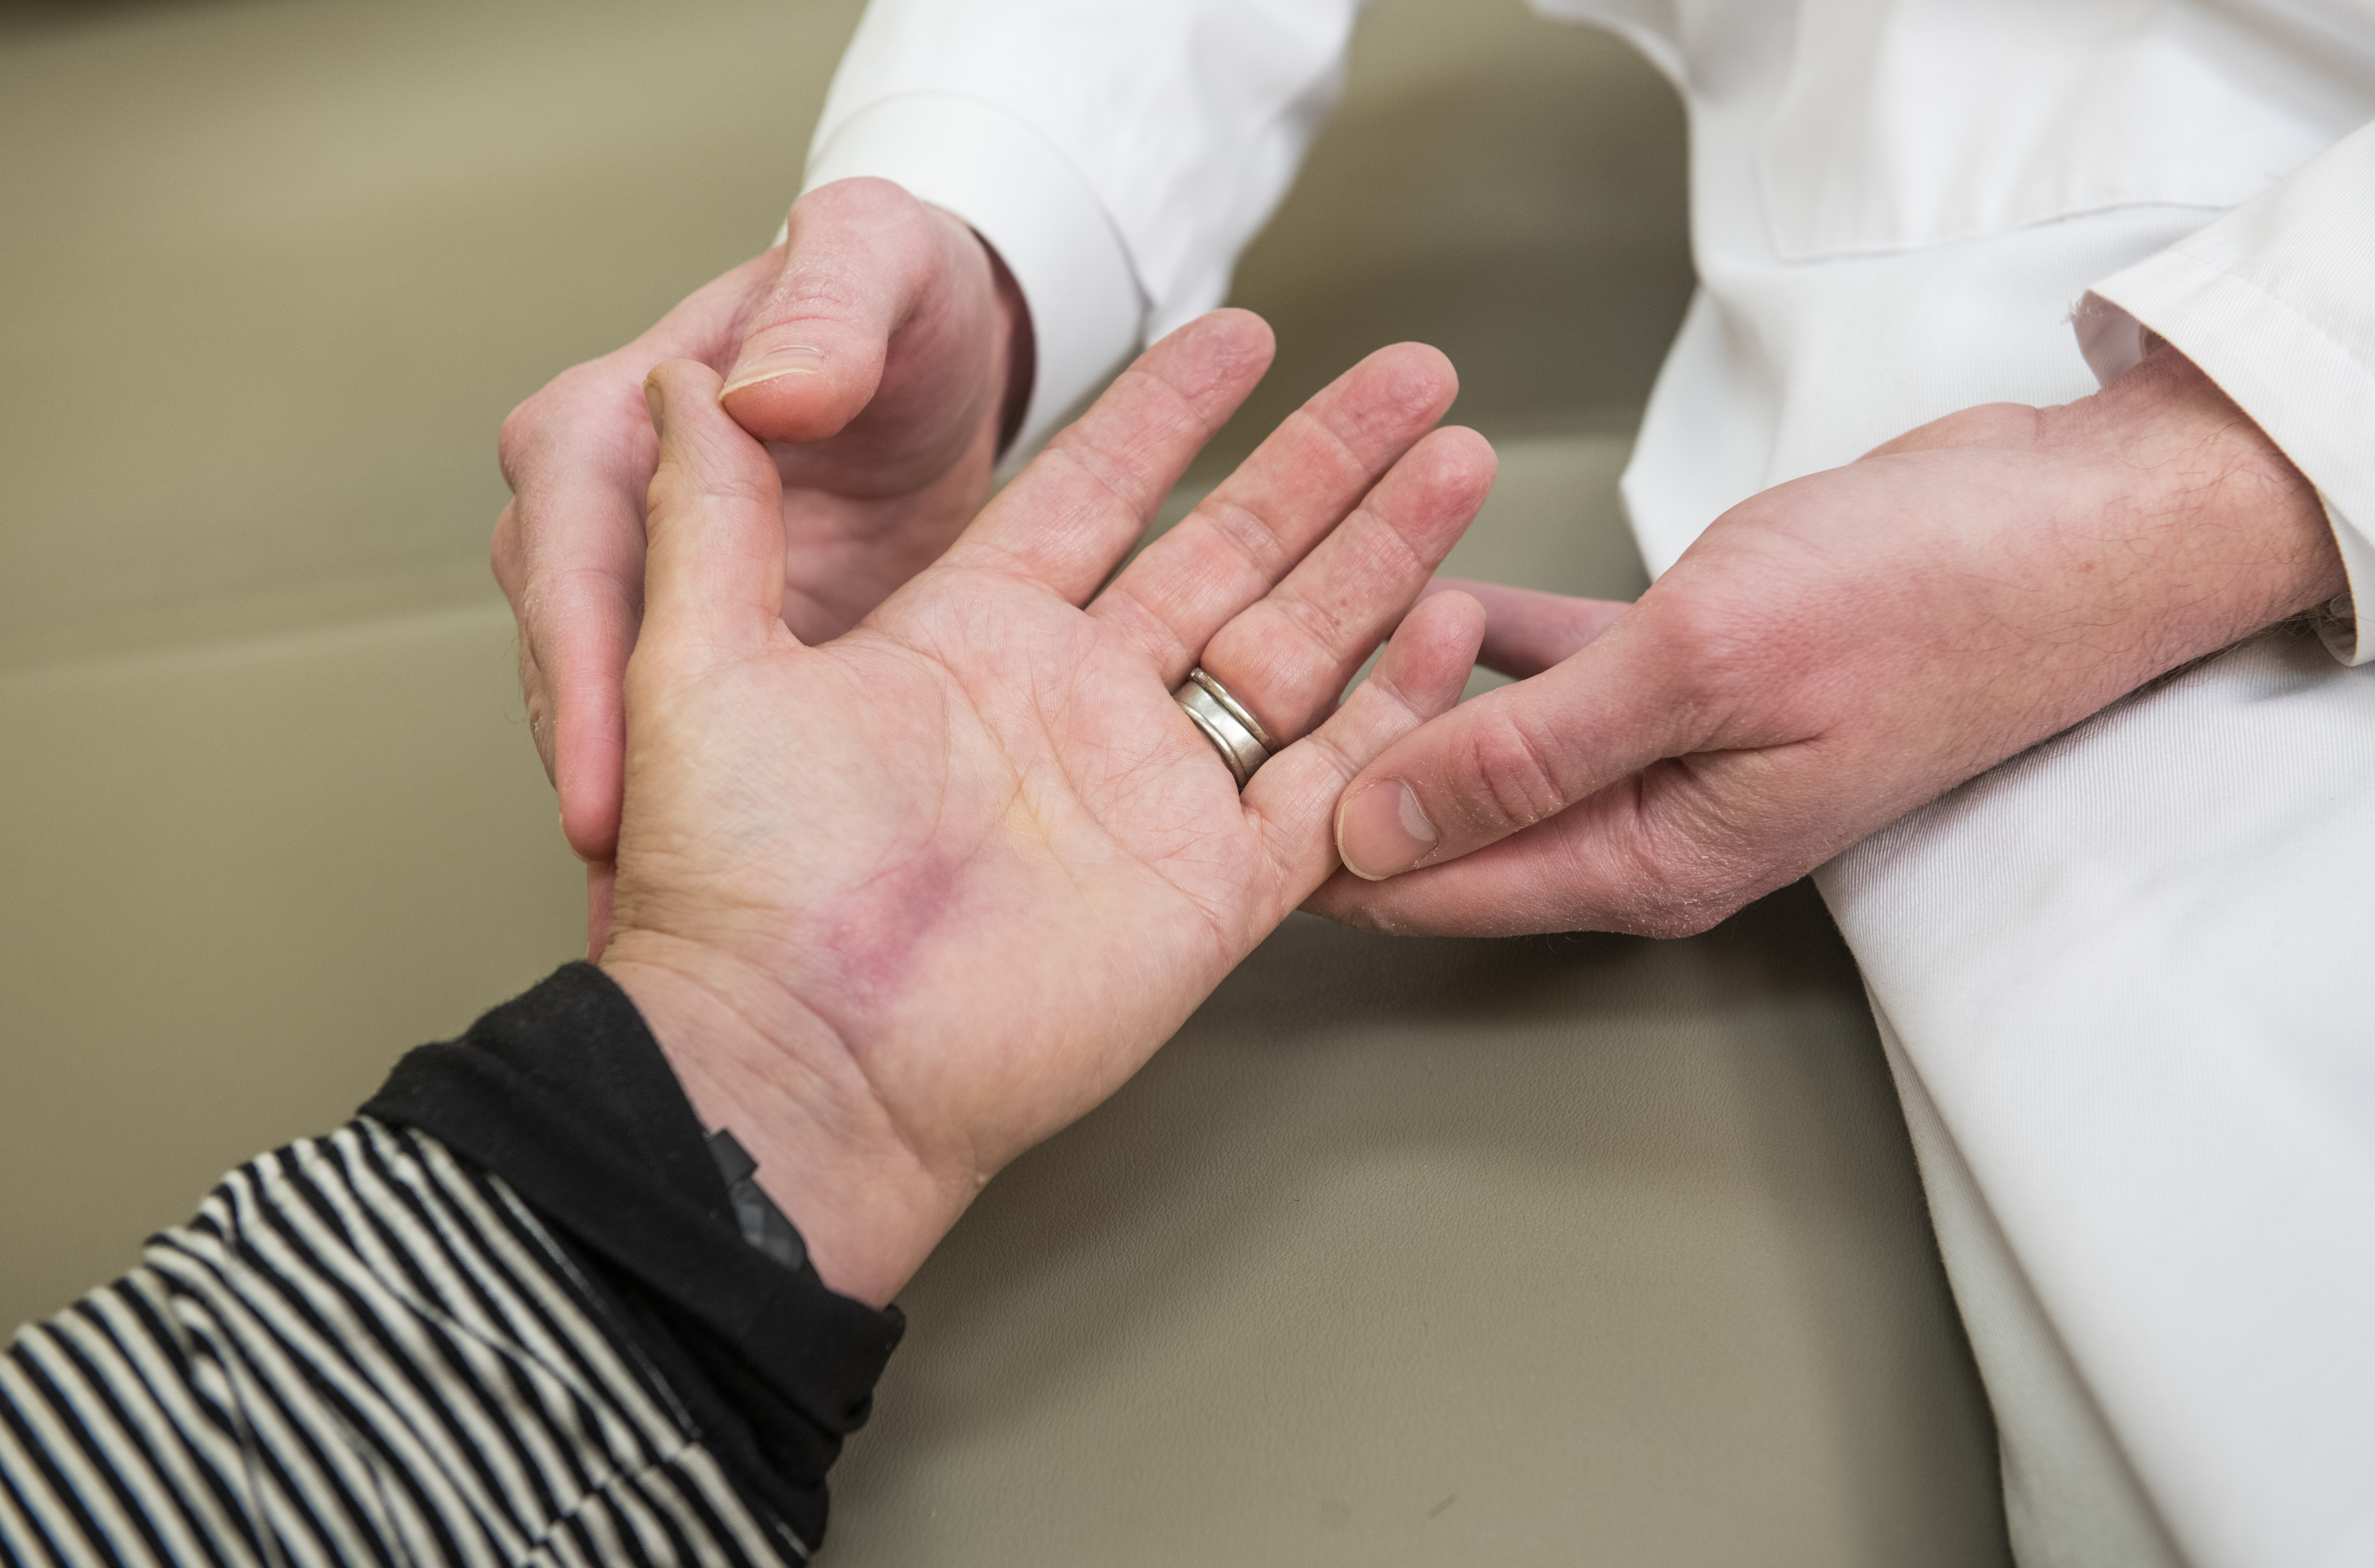 Getting a Grip: Innovative Wide-Awake Surgery for Treating Hand and Wrist Conditions